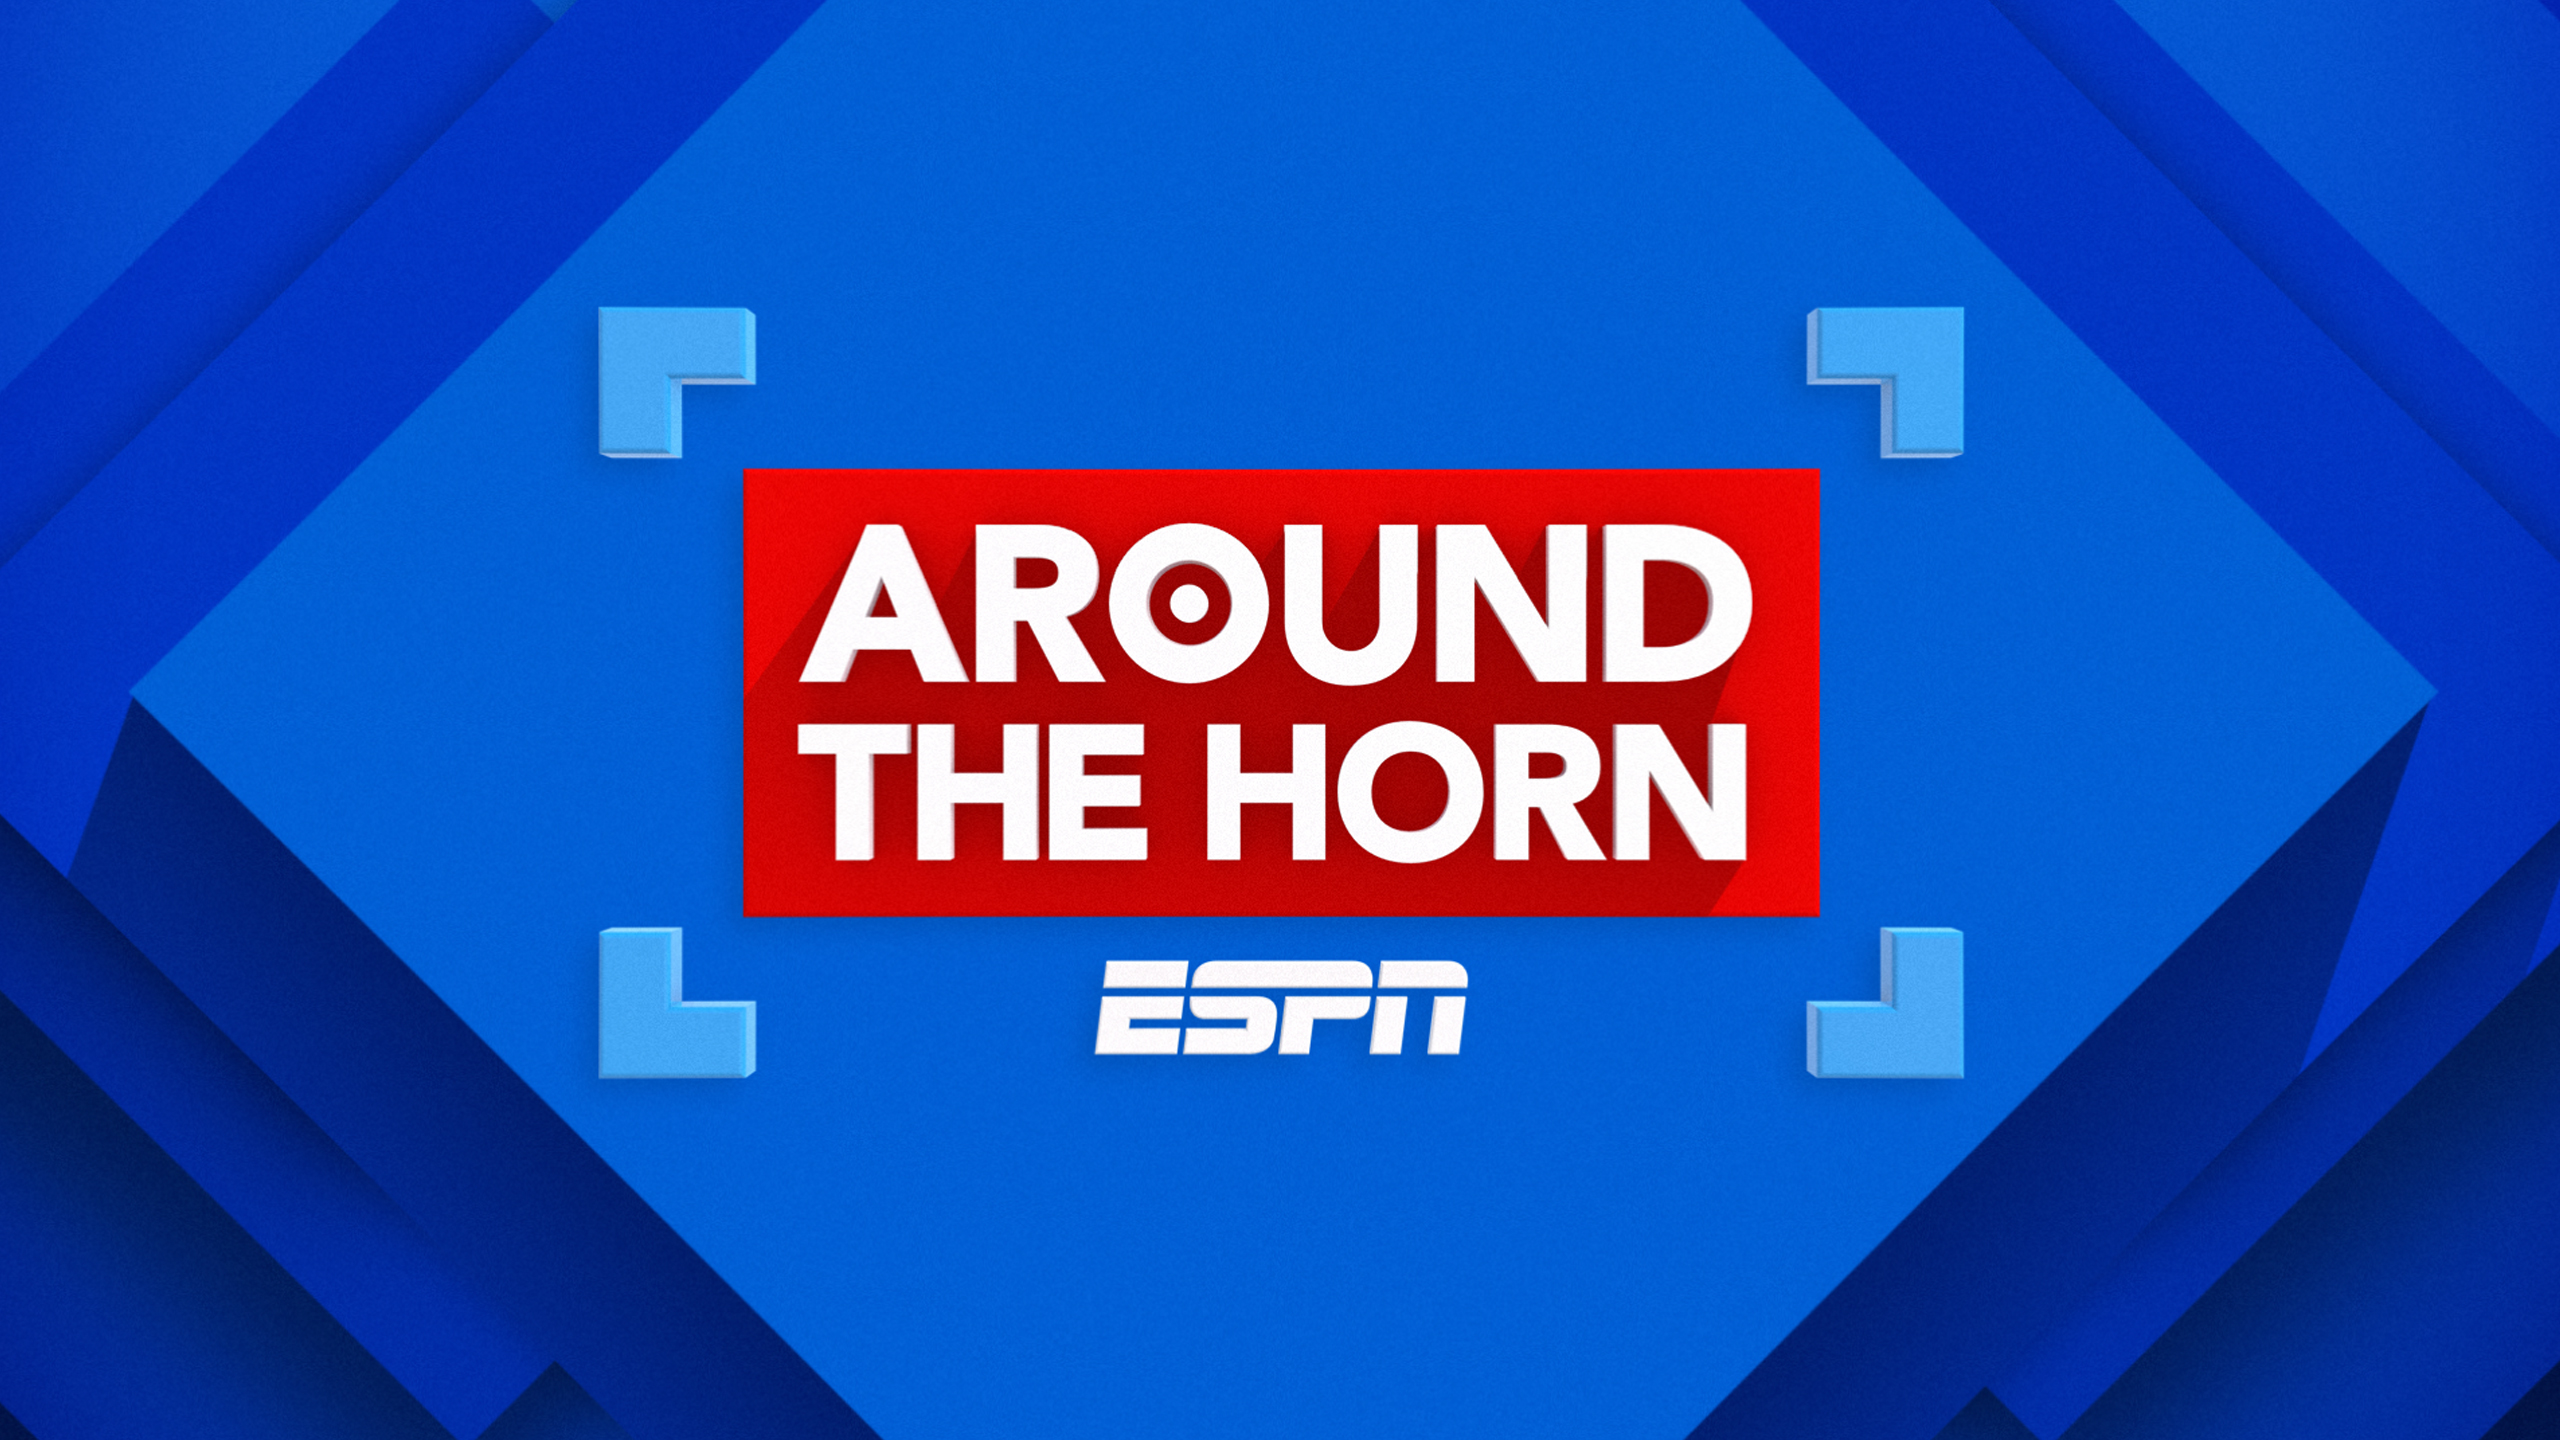 Fri, 2/22 - Around The Horn